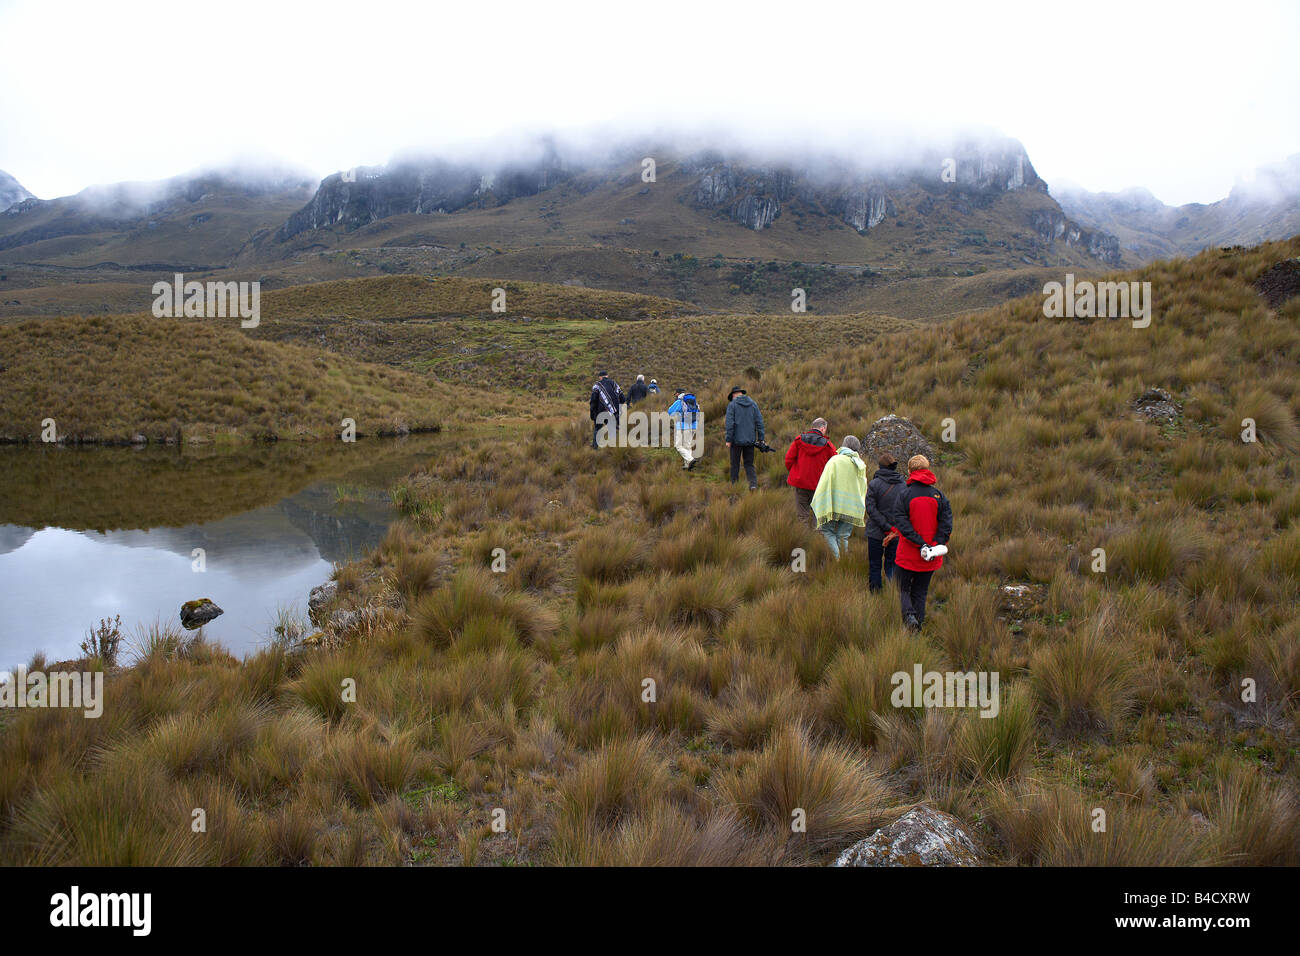 Tour group hiking in Andes Mountains, Ecuador - Stock Image